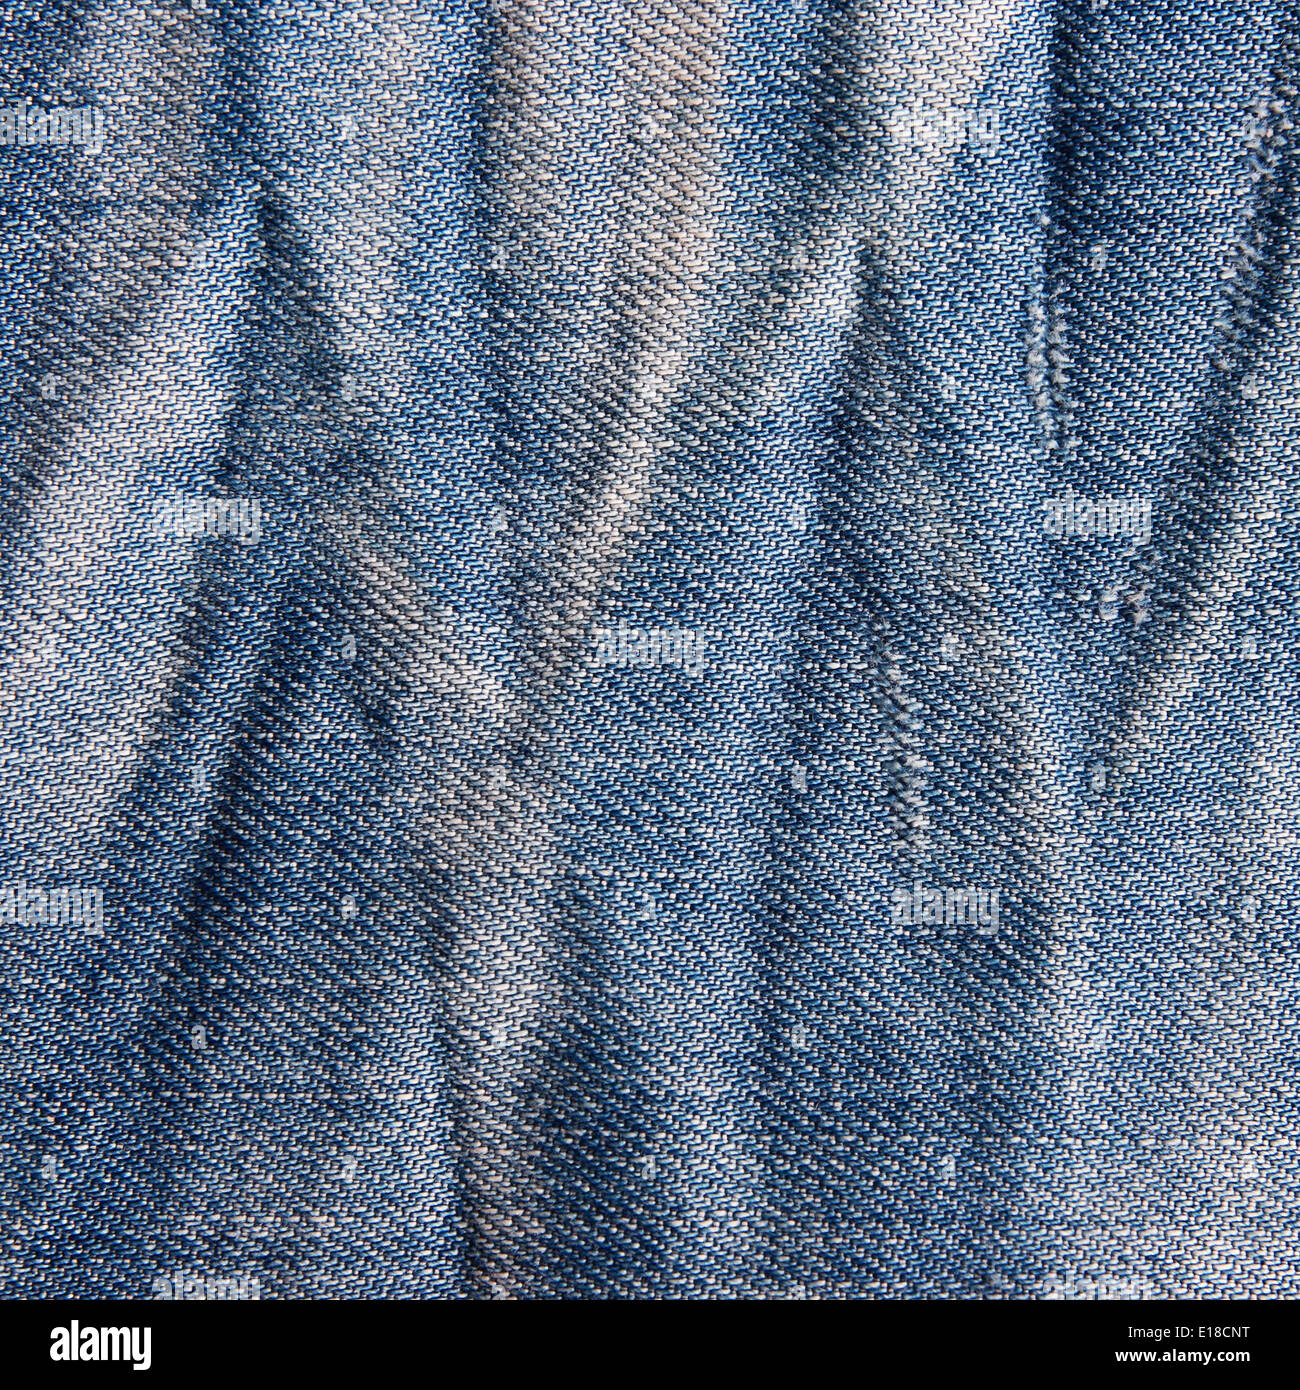 Vintage jeans texture with scuffed. Jeans background. - Stock Image